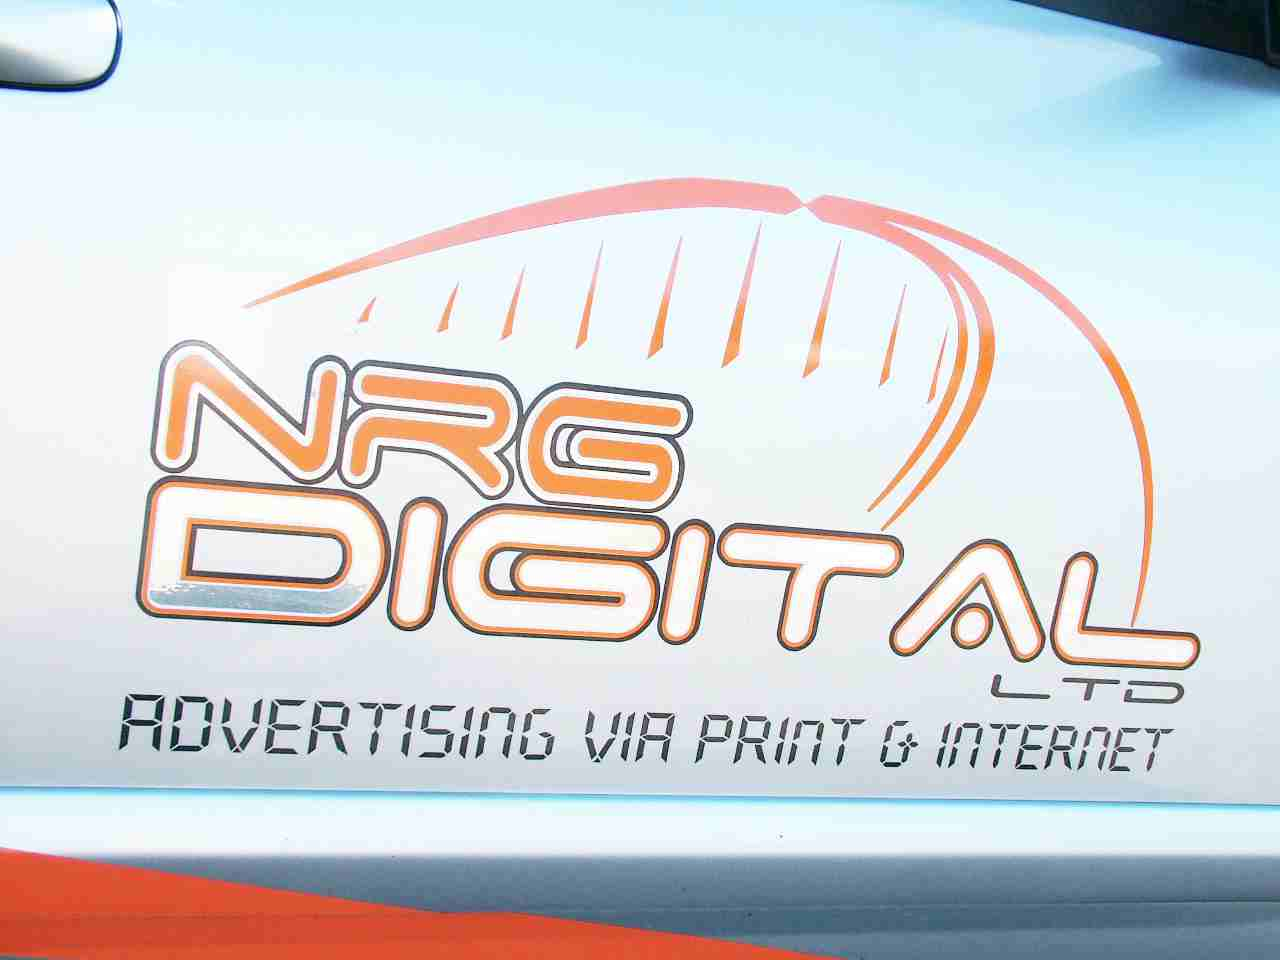 NRG Digital new-car-logo